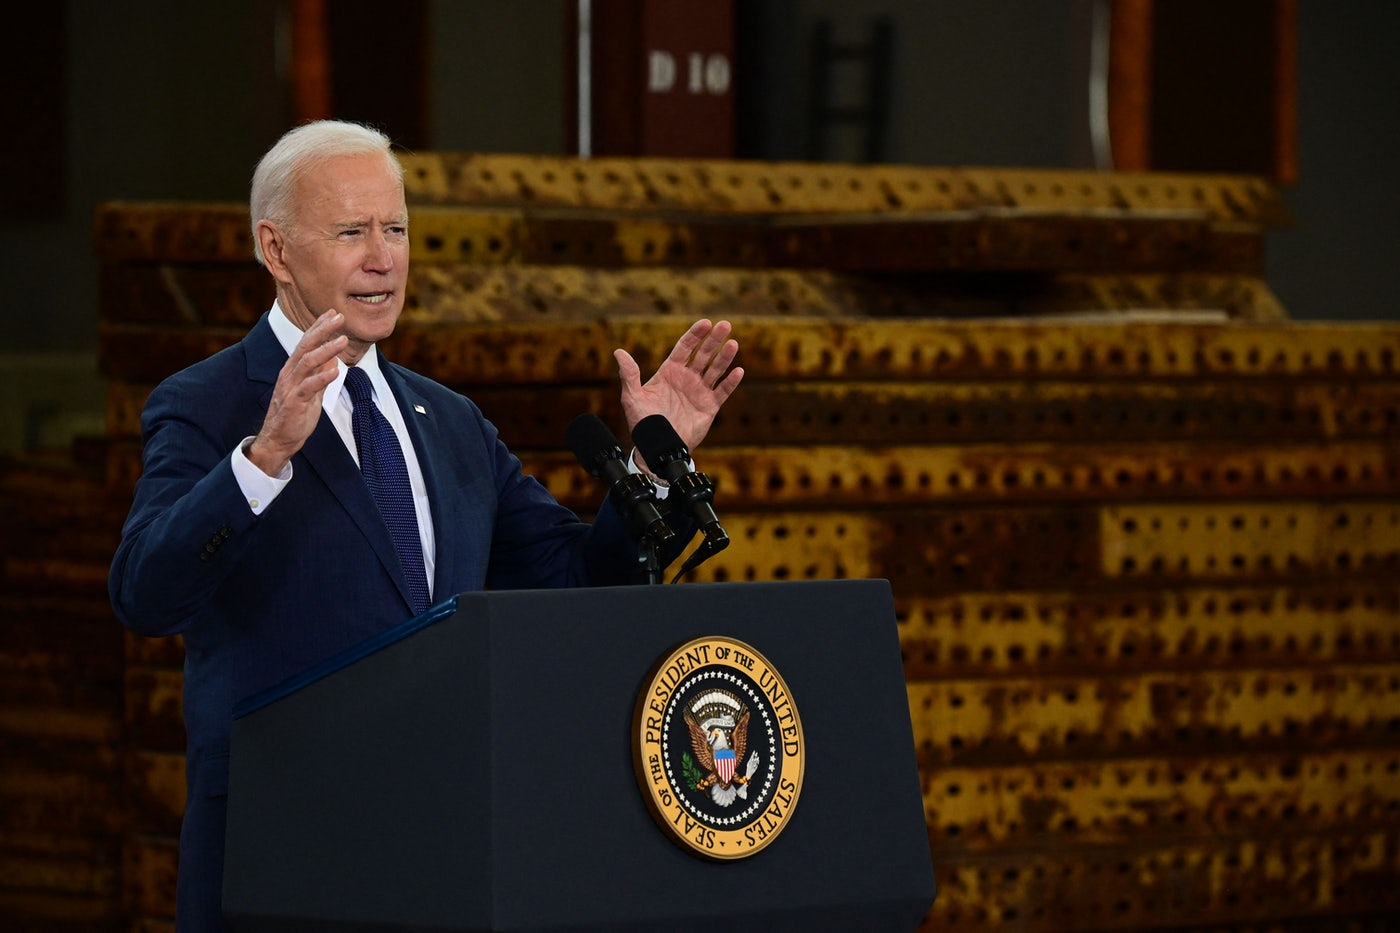 Joe Biden speaks at a podium.